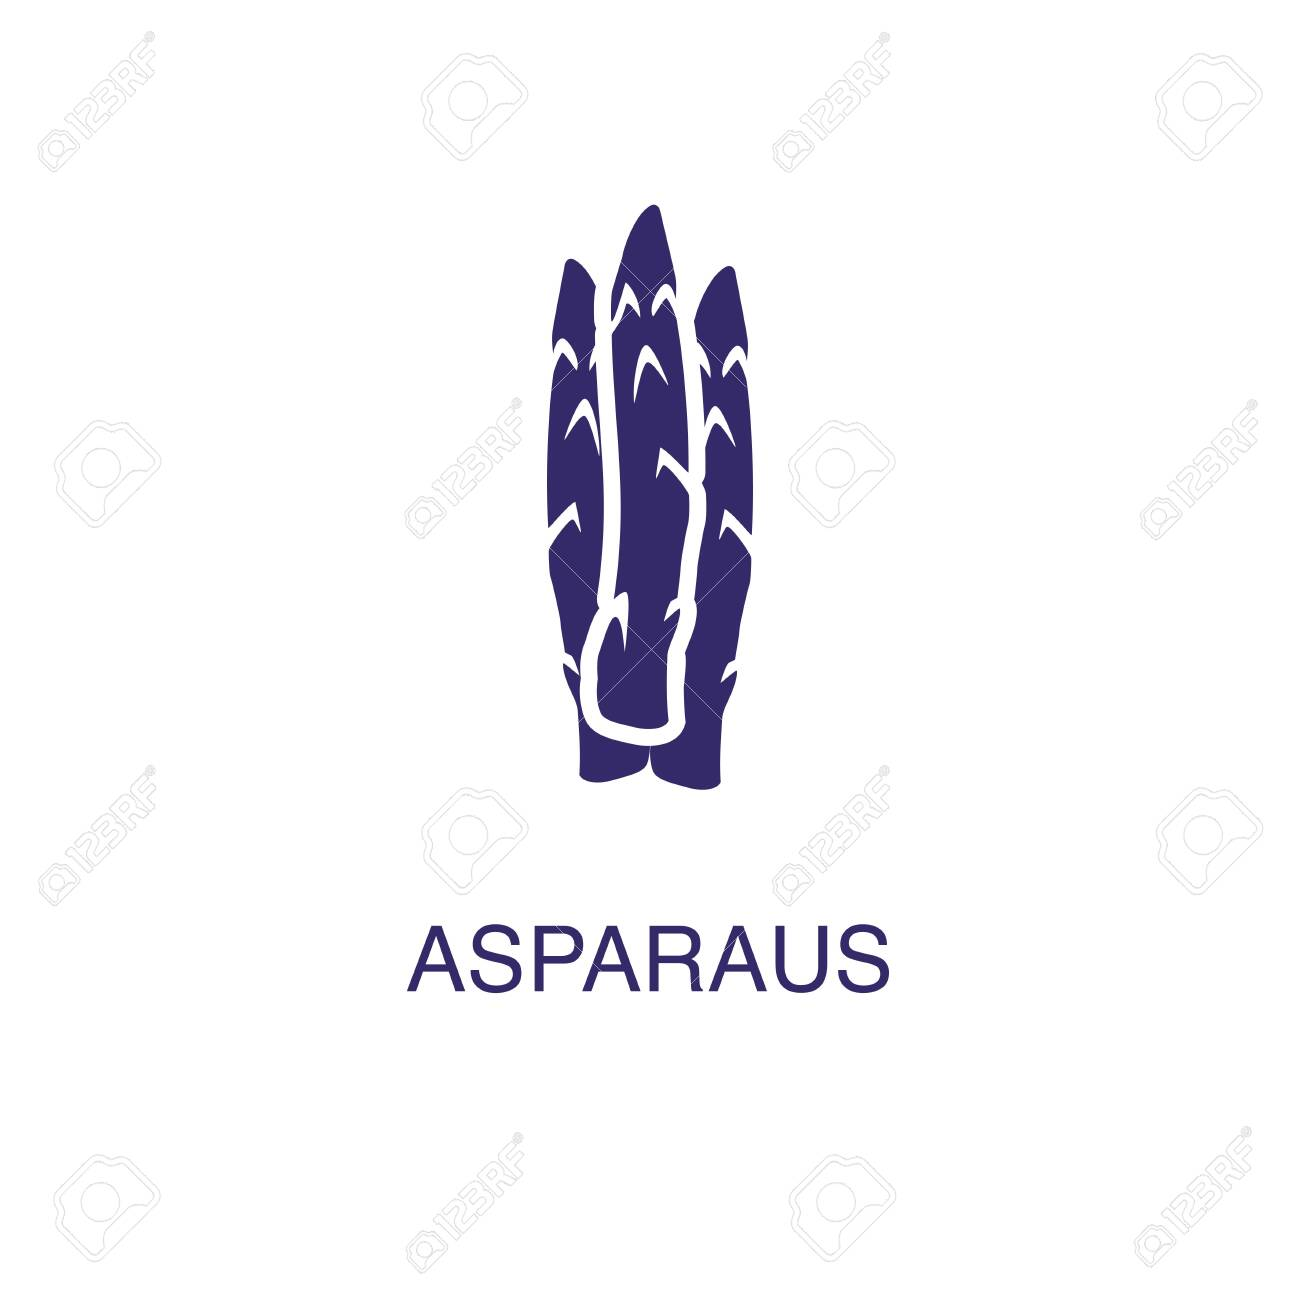 Asparagus element in flat simple style on white background. Asparagus icon, with text name concept template - 134450345